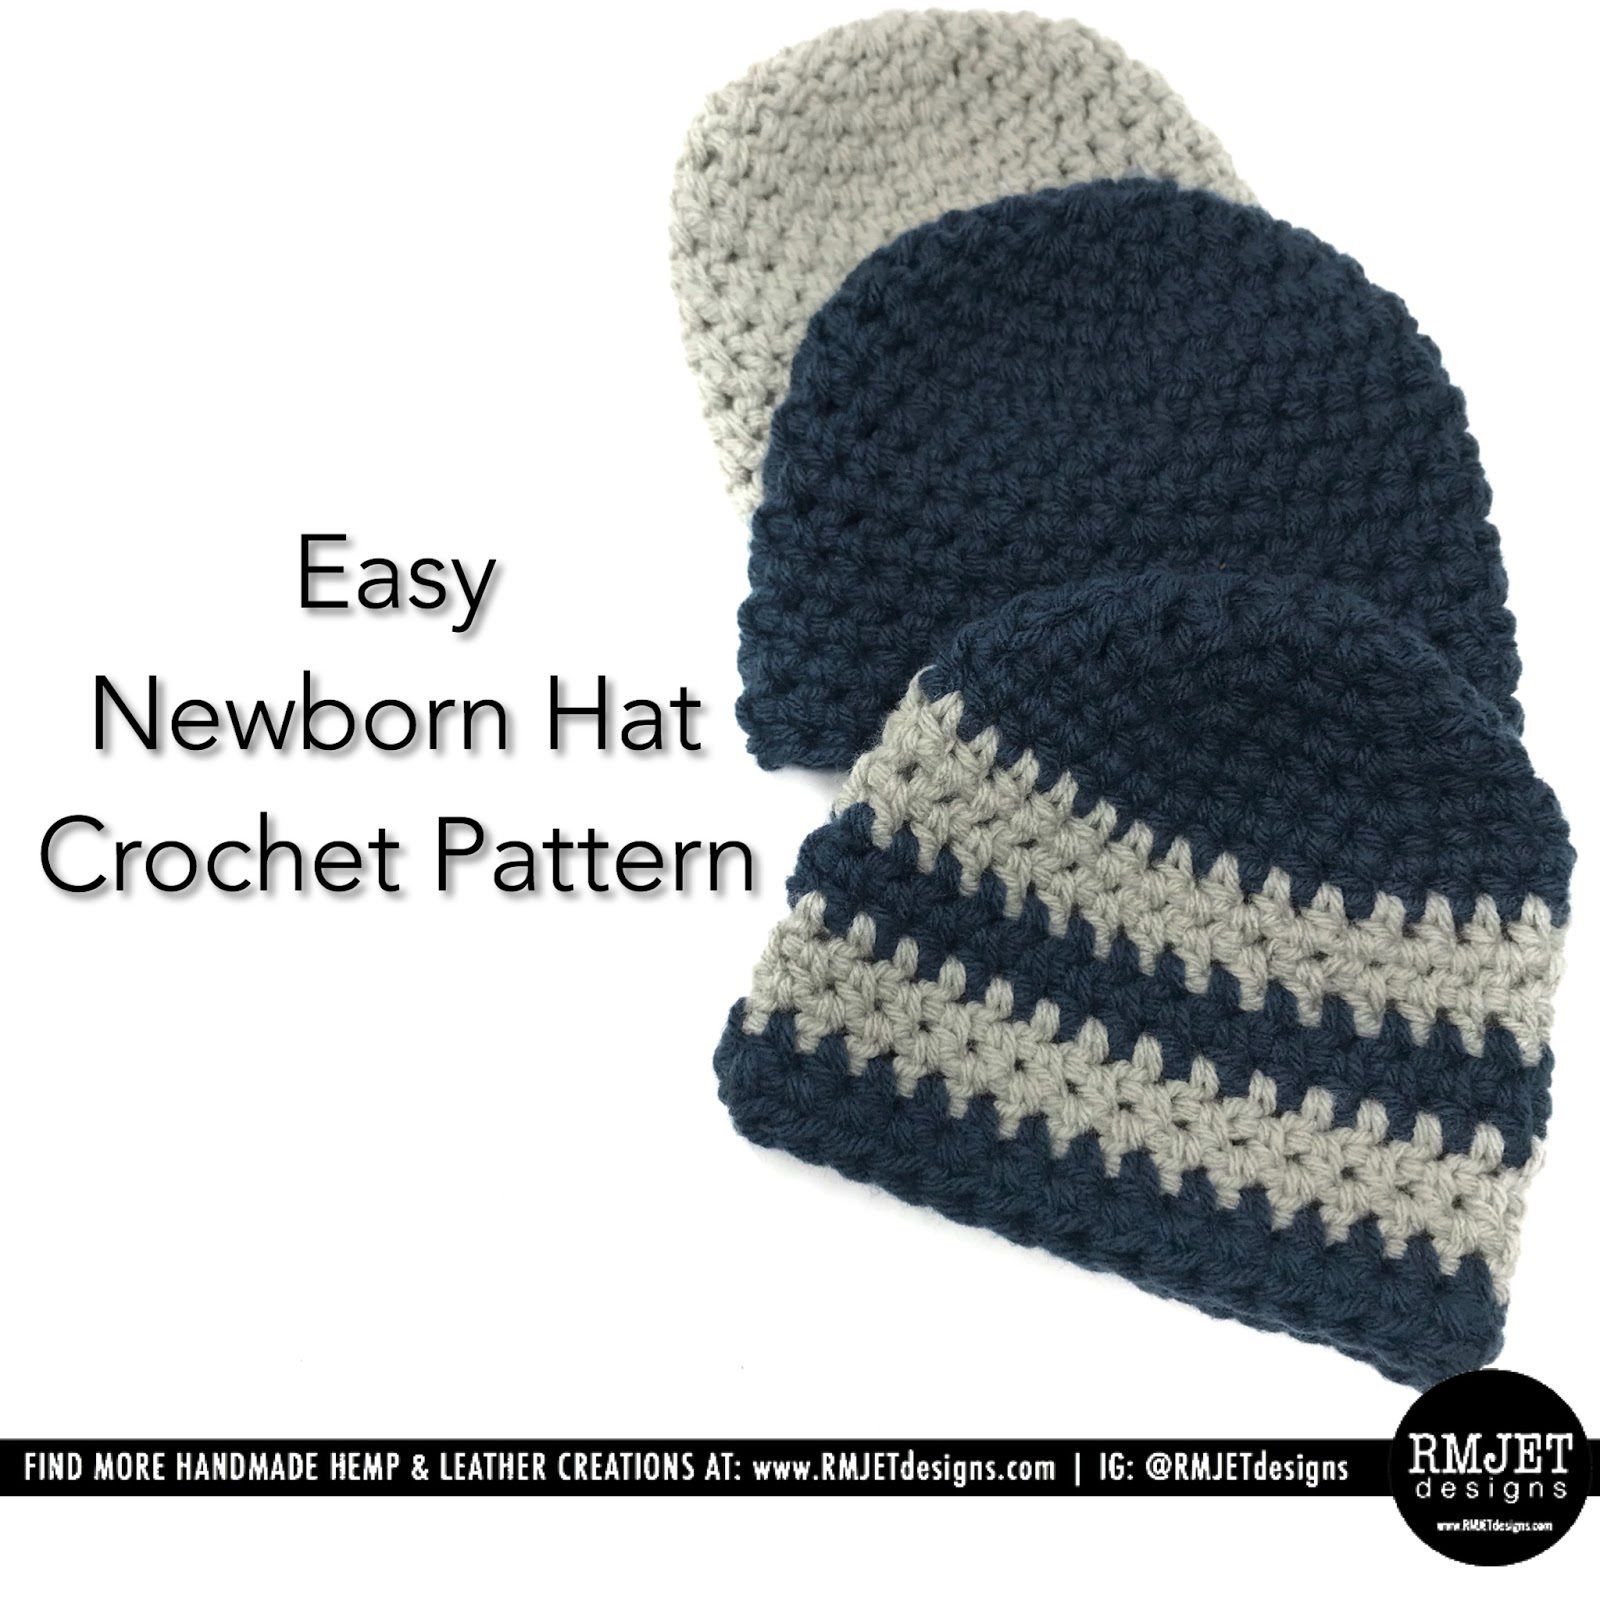 FREE Newborn Baby Hat Crochet Pattern by RMJETdesigns